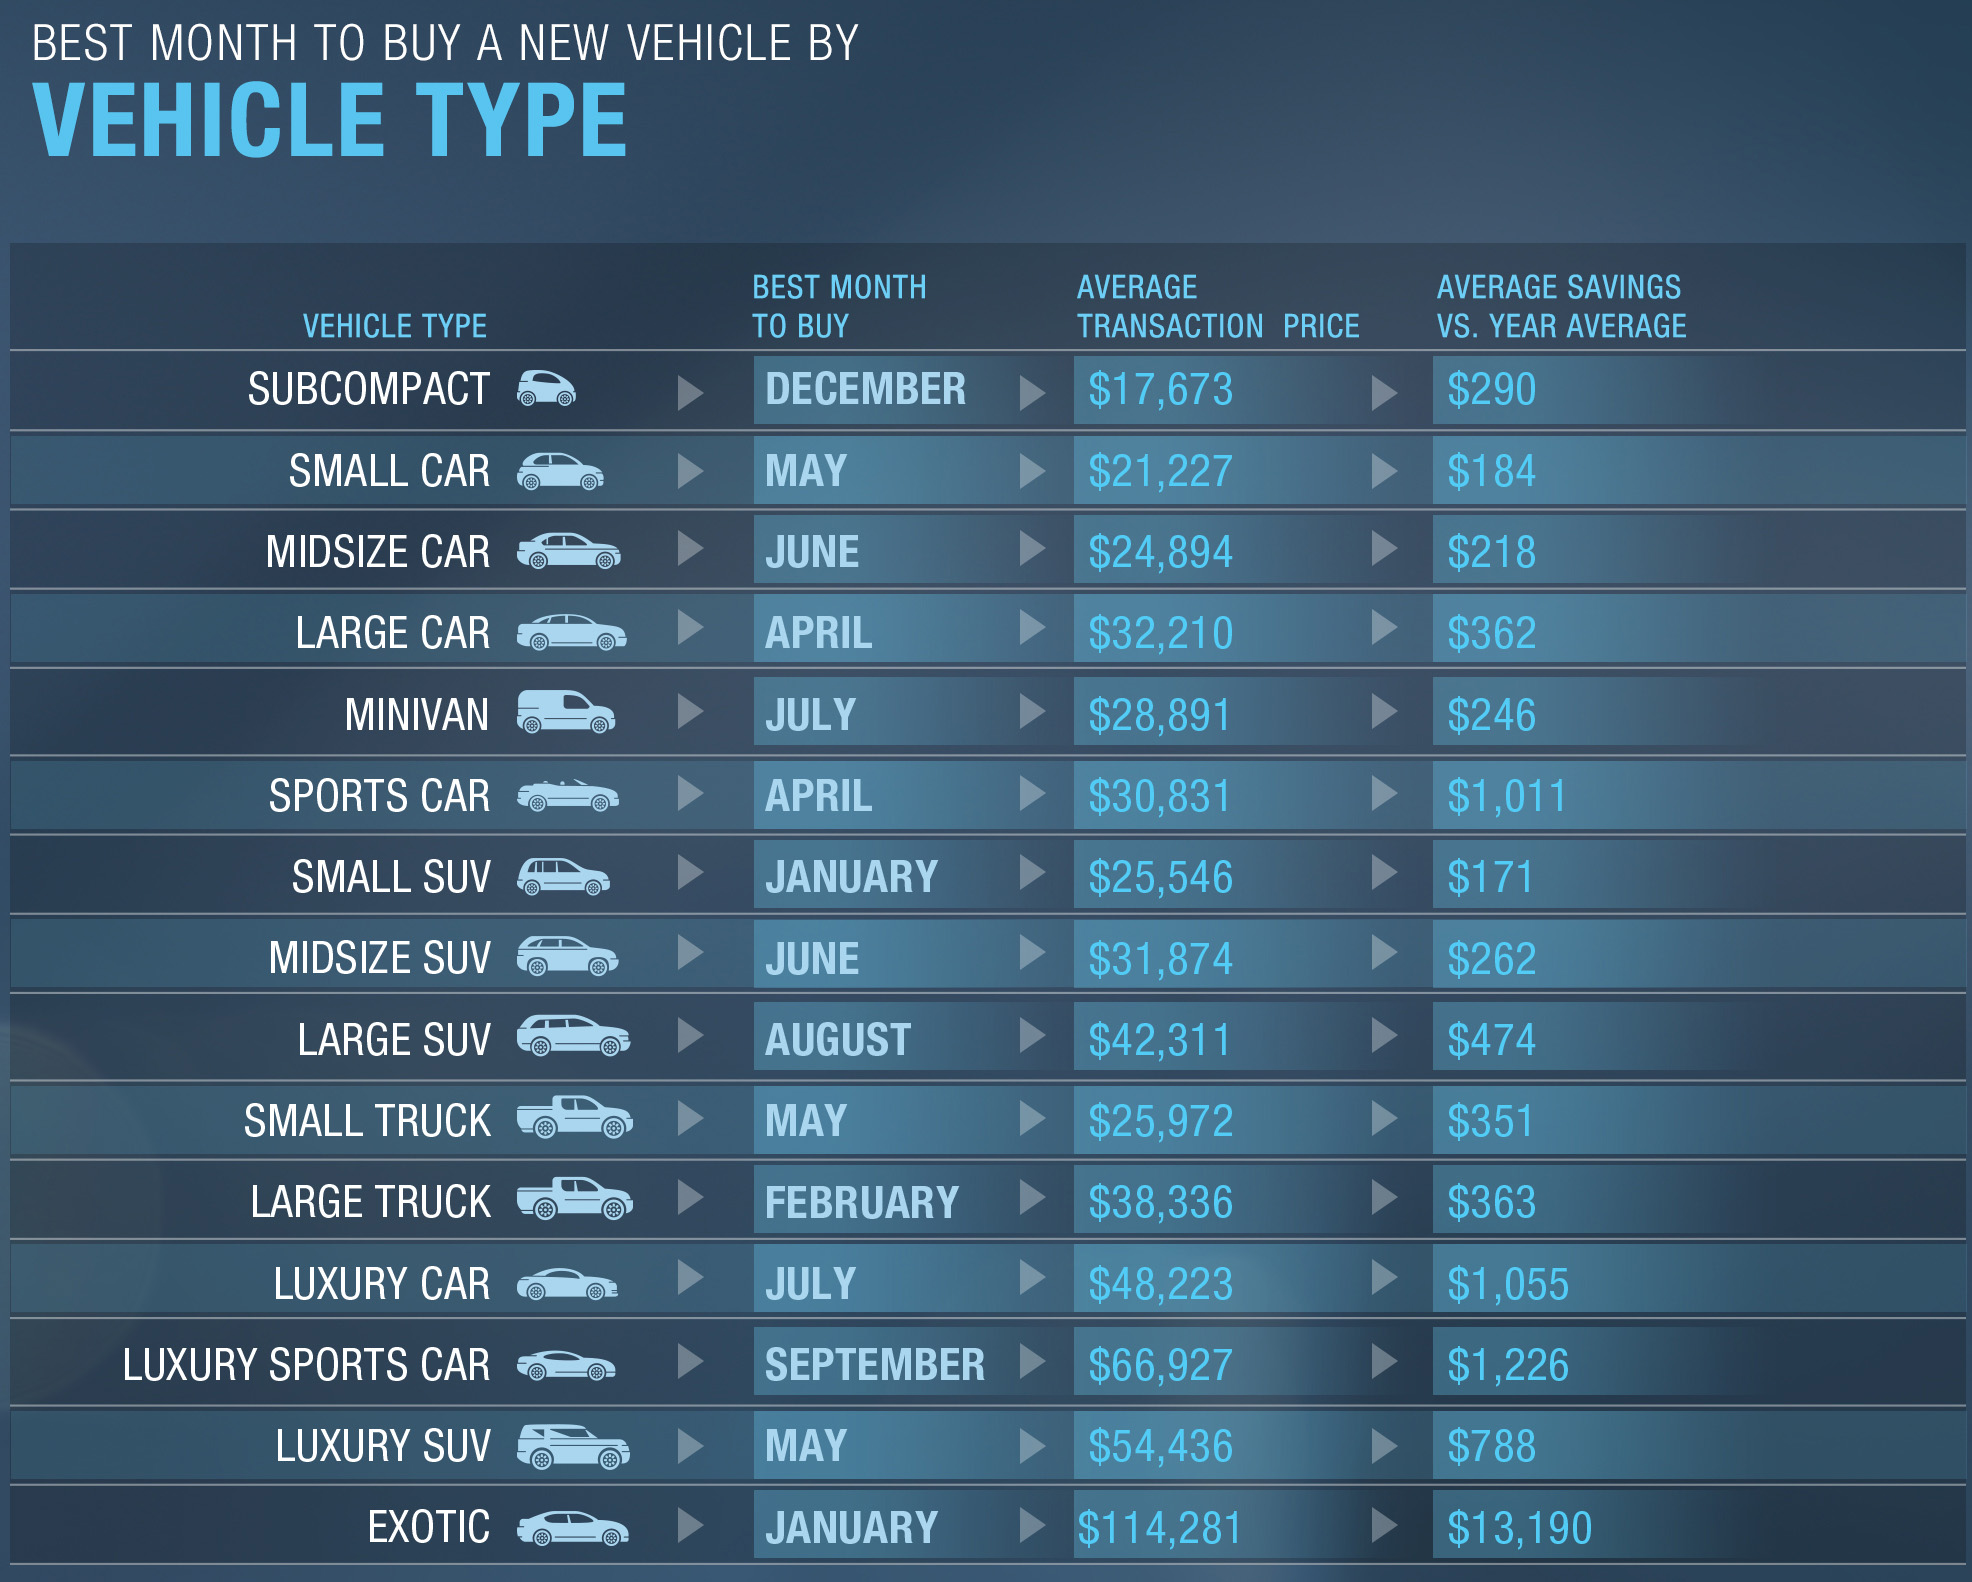 Best Month to Buy a New Vehicle by Vehicle Type